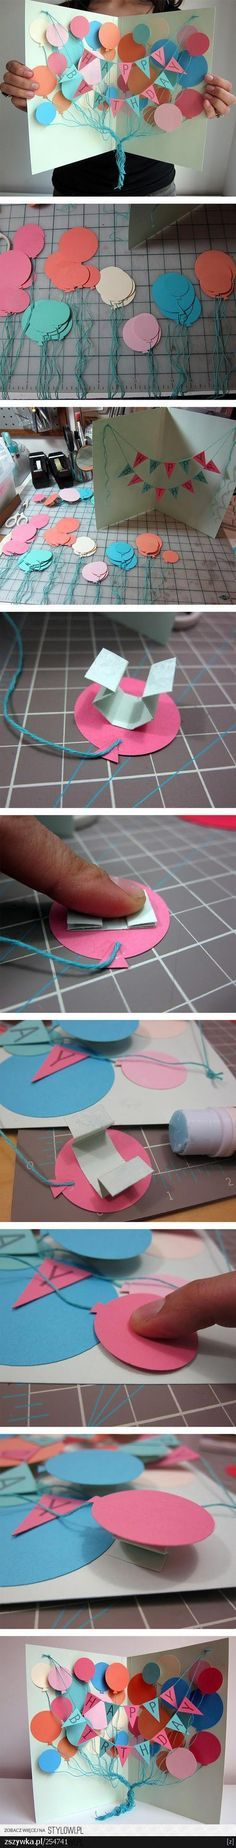 Awesome birthday card! omg i must do this for one of my bff! she will love it! Birthday gifts #birthdaygifts